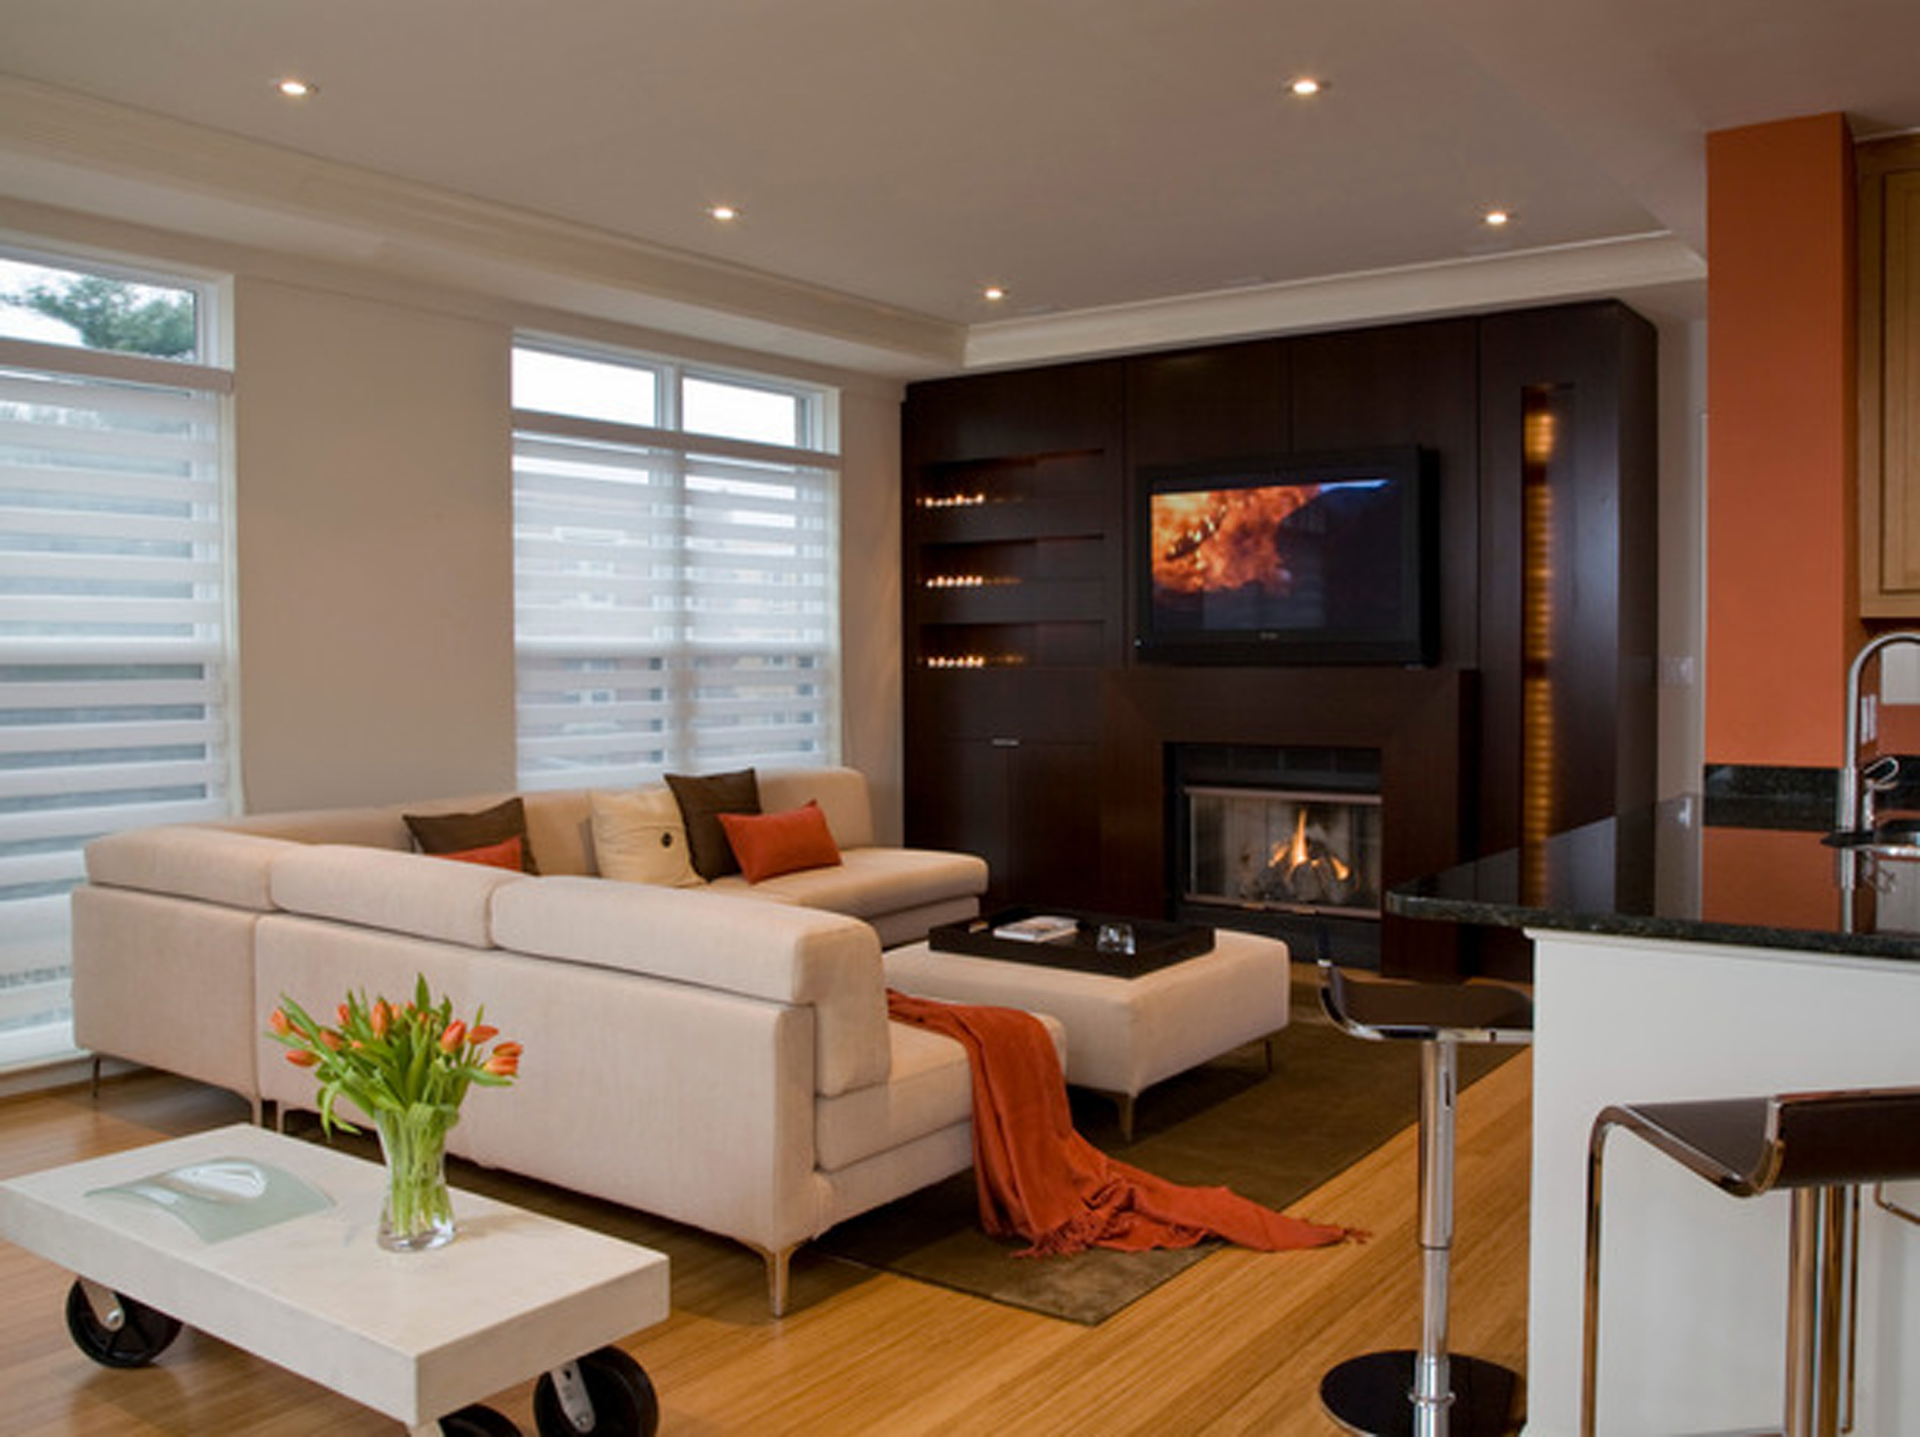 Magnificent Modern Living Room with Fireplace and TV 1920 x 1437 · 865 kB · jpeg